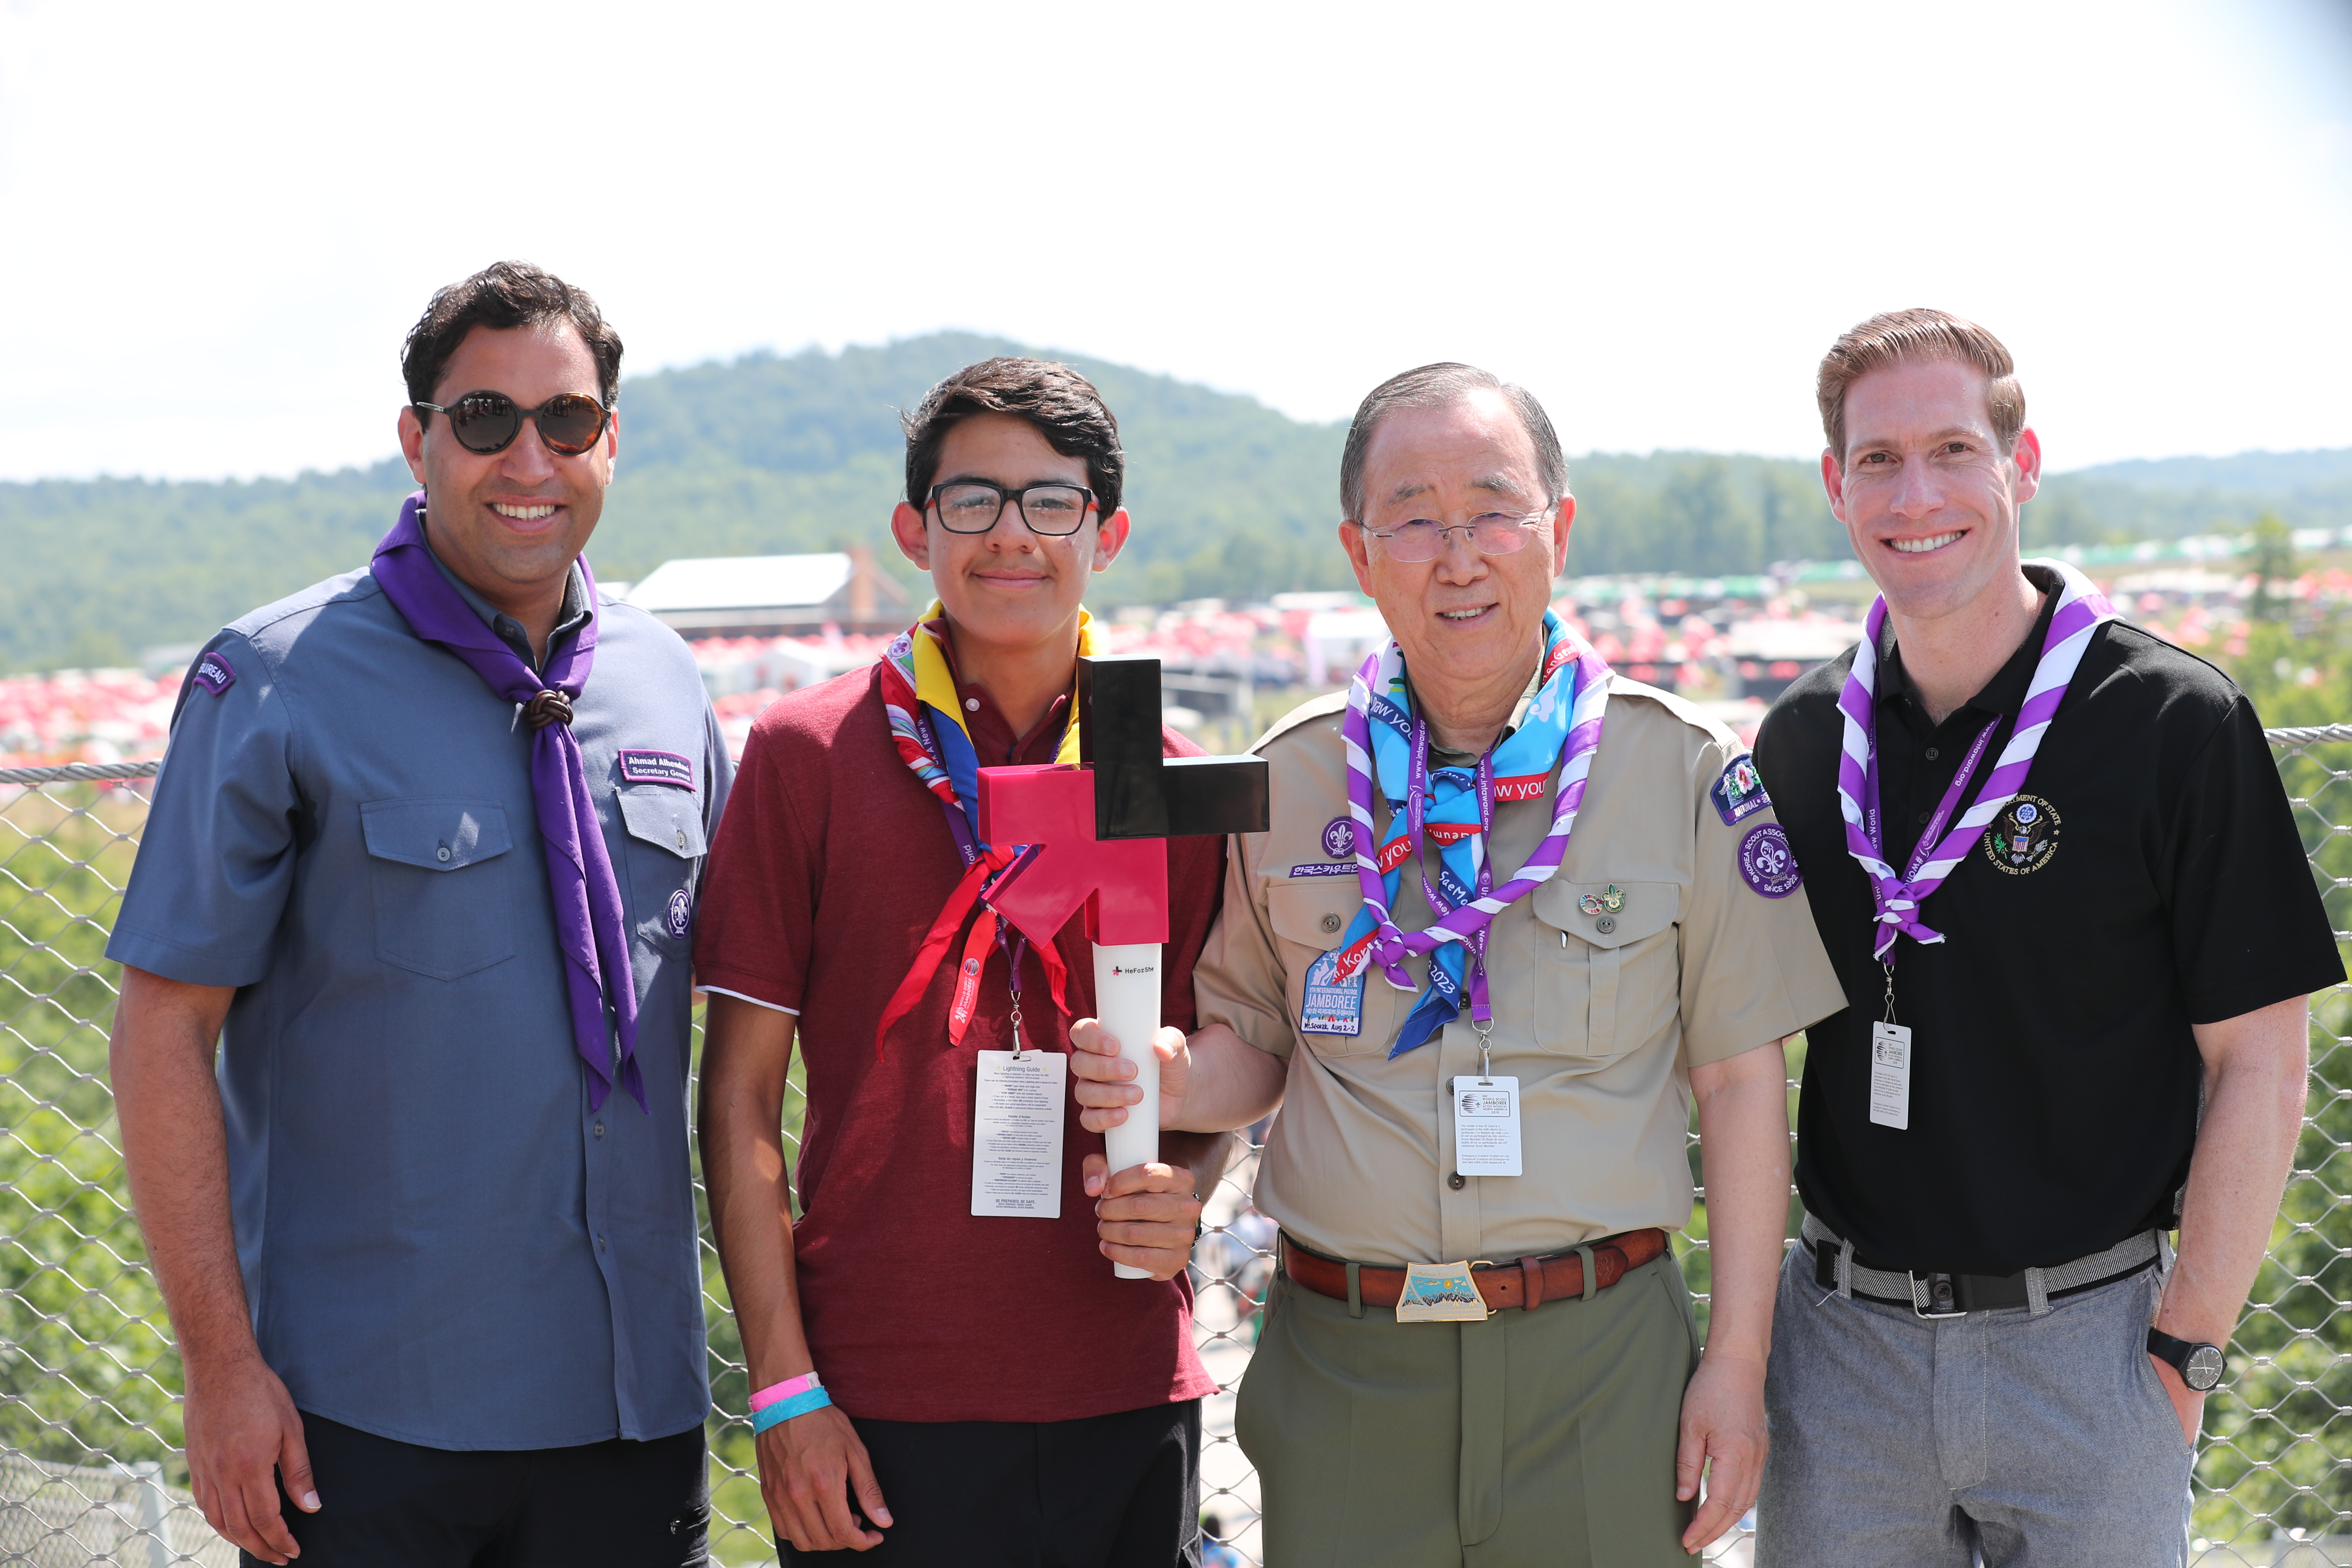 Ahmad Alhendawi heforshe at the world scout jamboree, youth leading the way